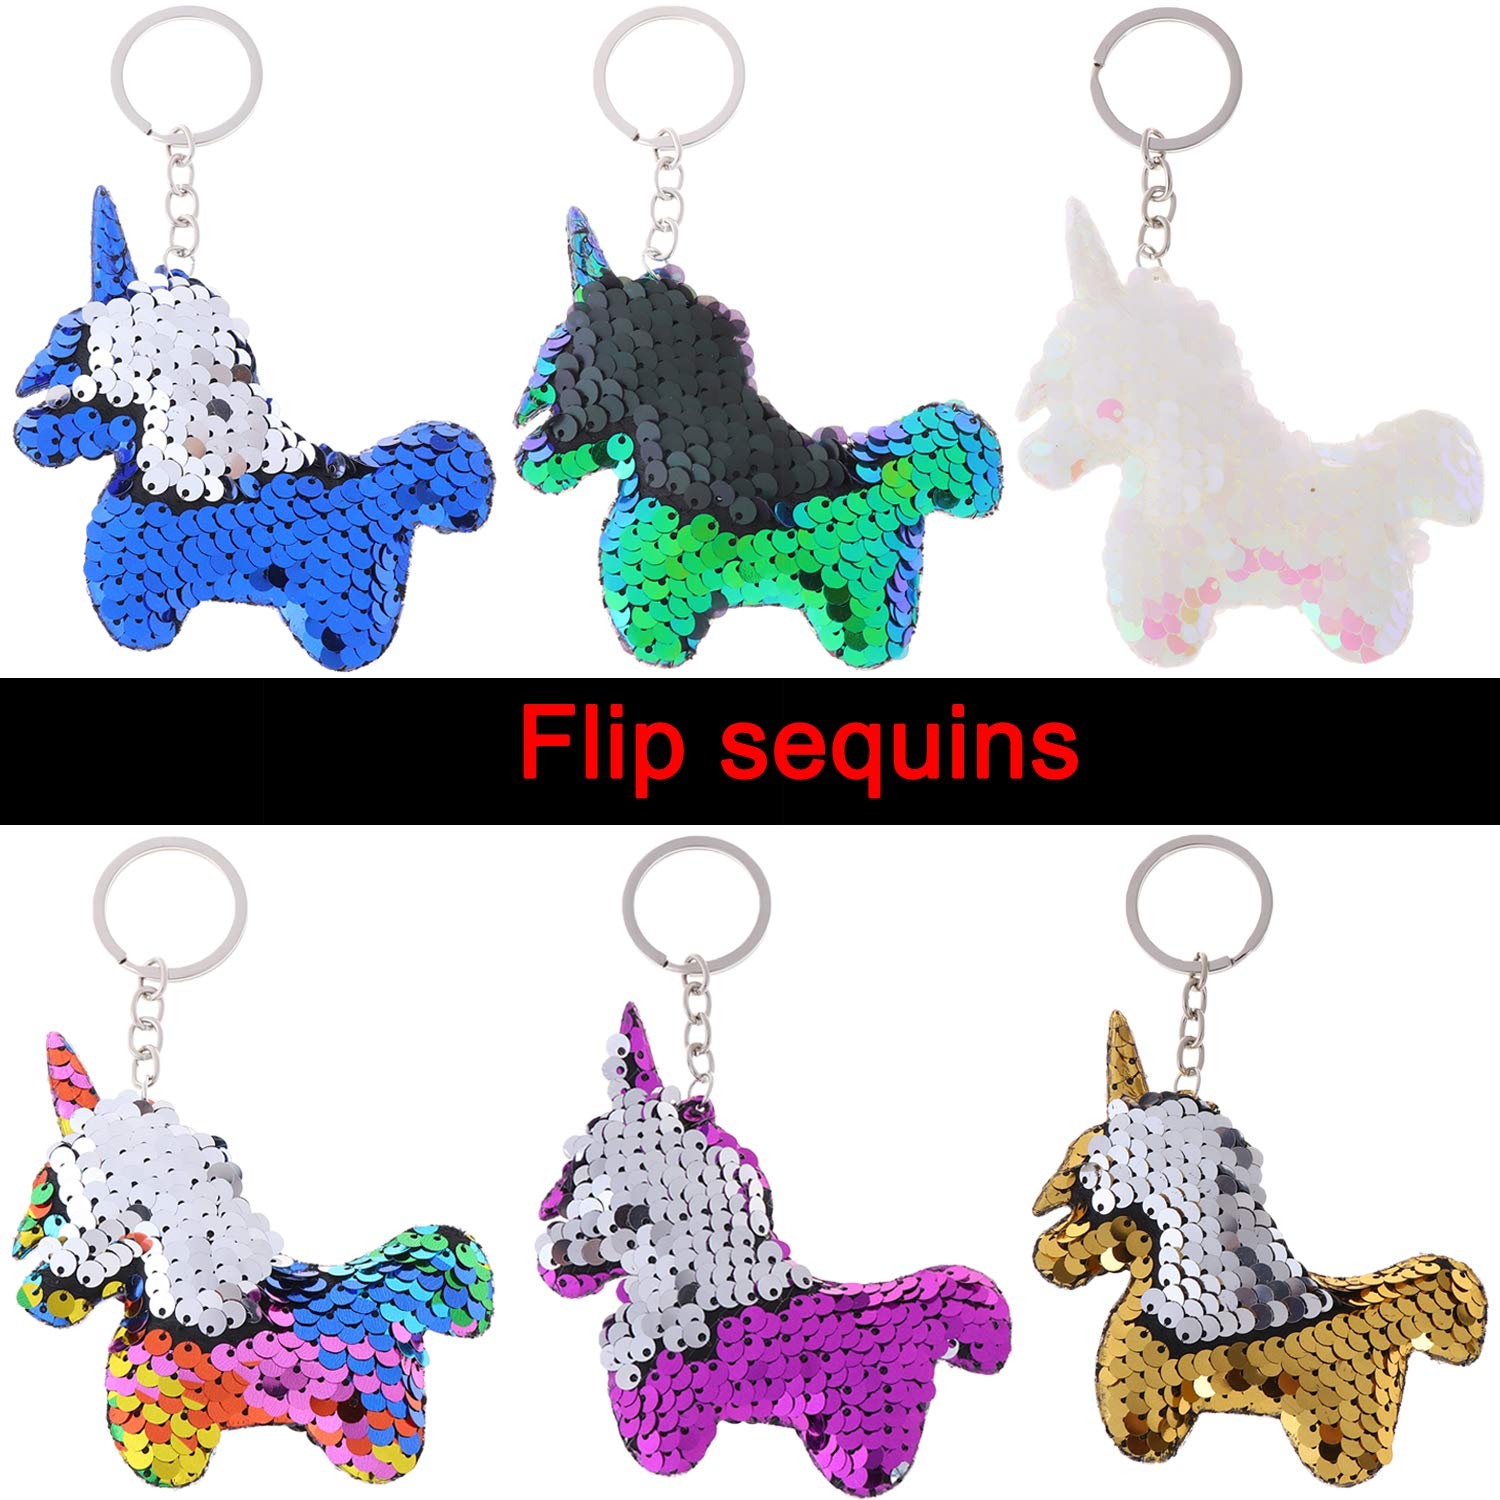 Meimeida 24 Pieces Flip Sequin Keychain Unicorn/ Keychain Decorations For Unicorn Party Supplies Keys Handbags Wallets Kids Party Favors